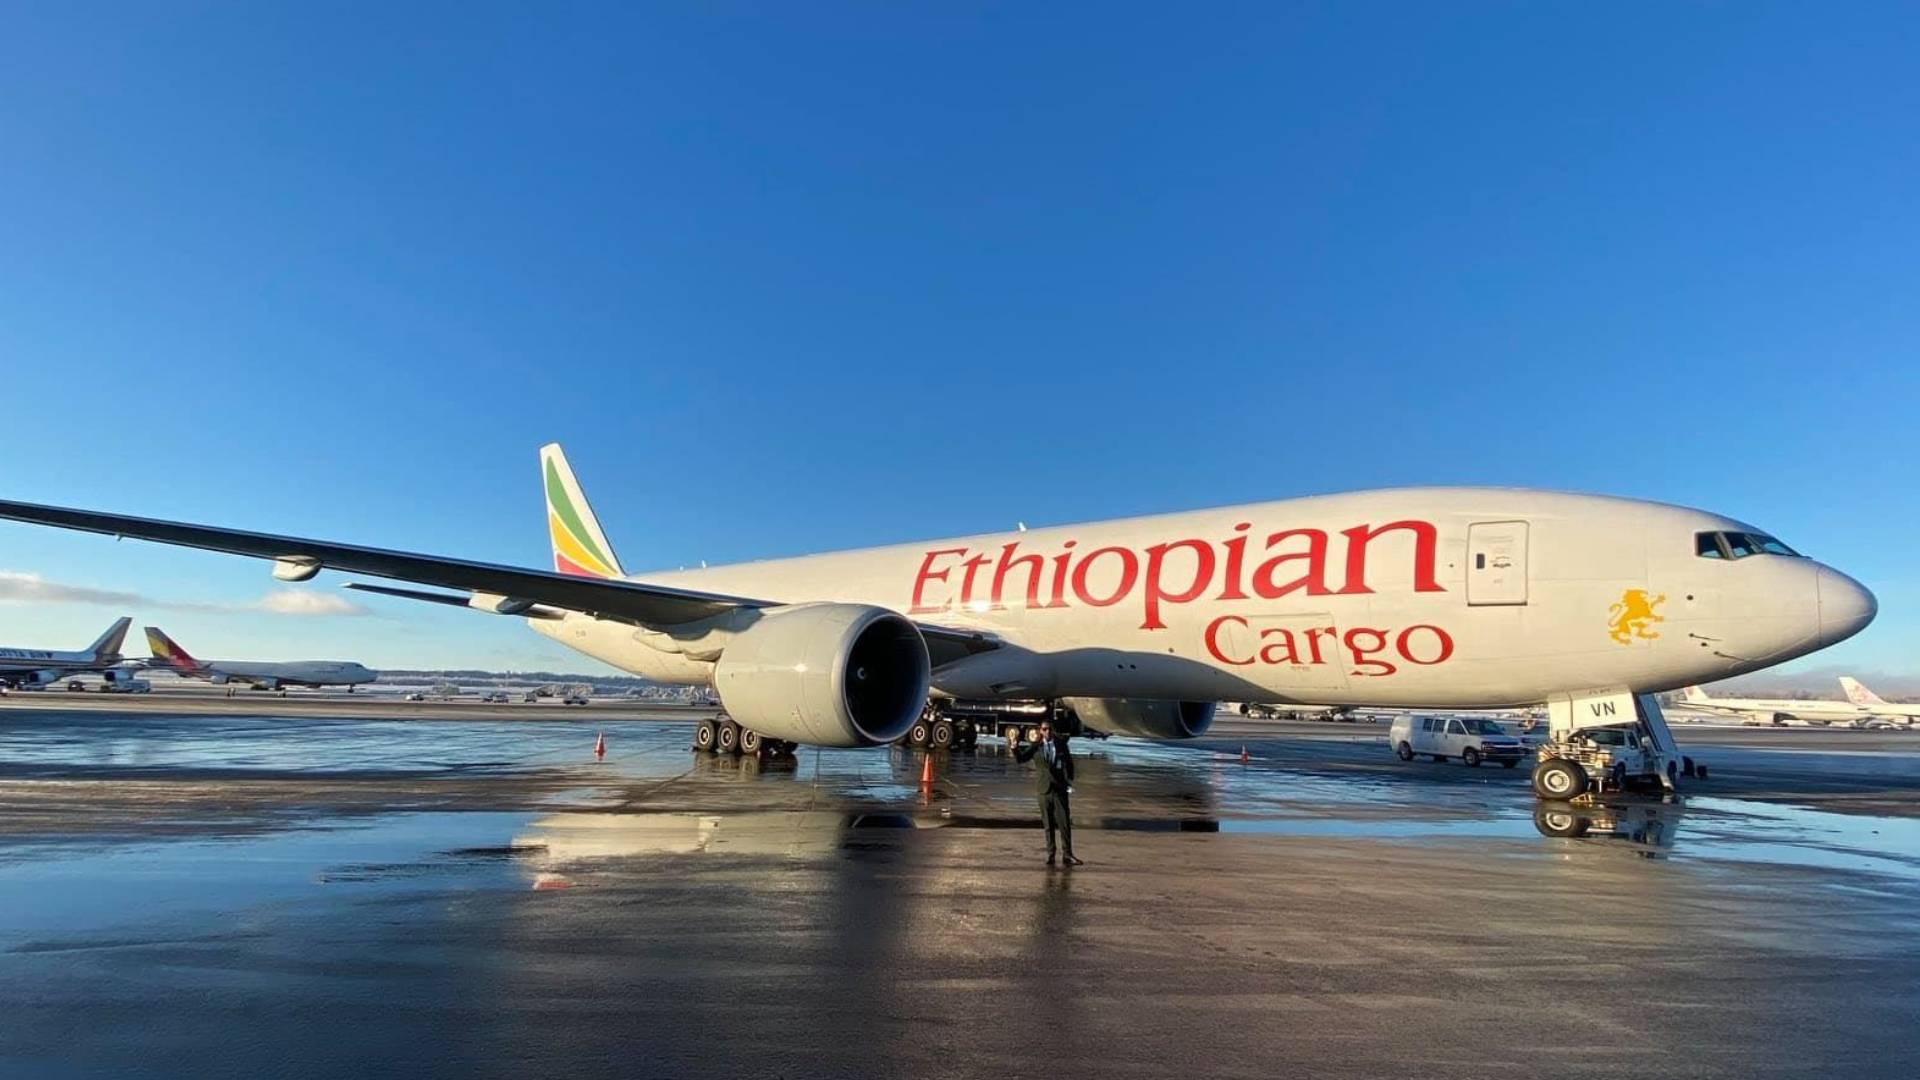 Ethiopian Cargo launches new Trans-Pacific route from Incheon to Atlanta via Anchorage